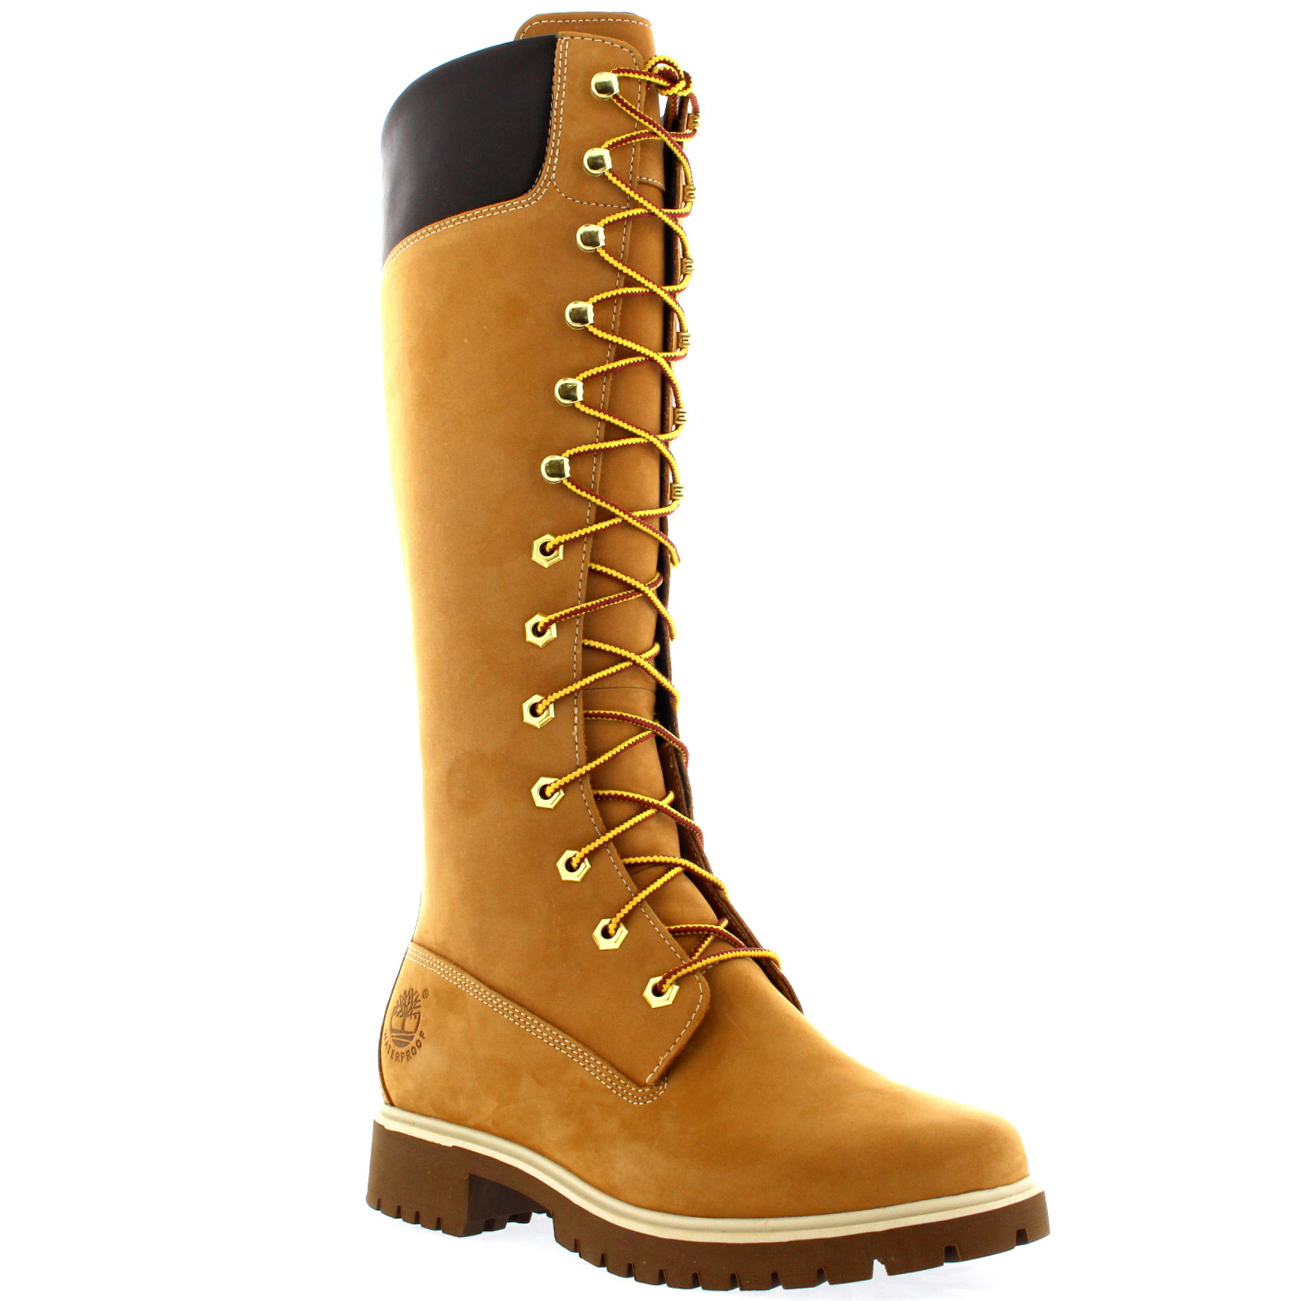 Womens timberland winter boots photo recommend dress for on every day in 2019